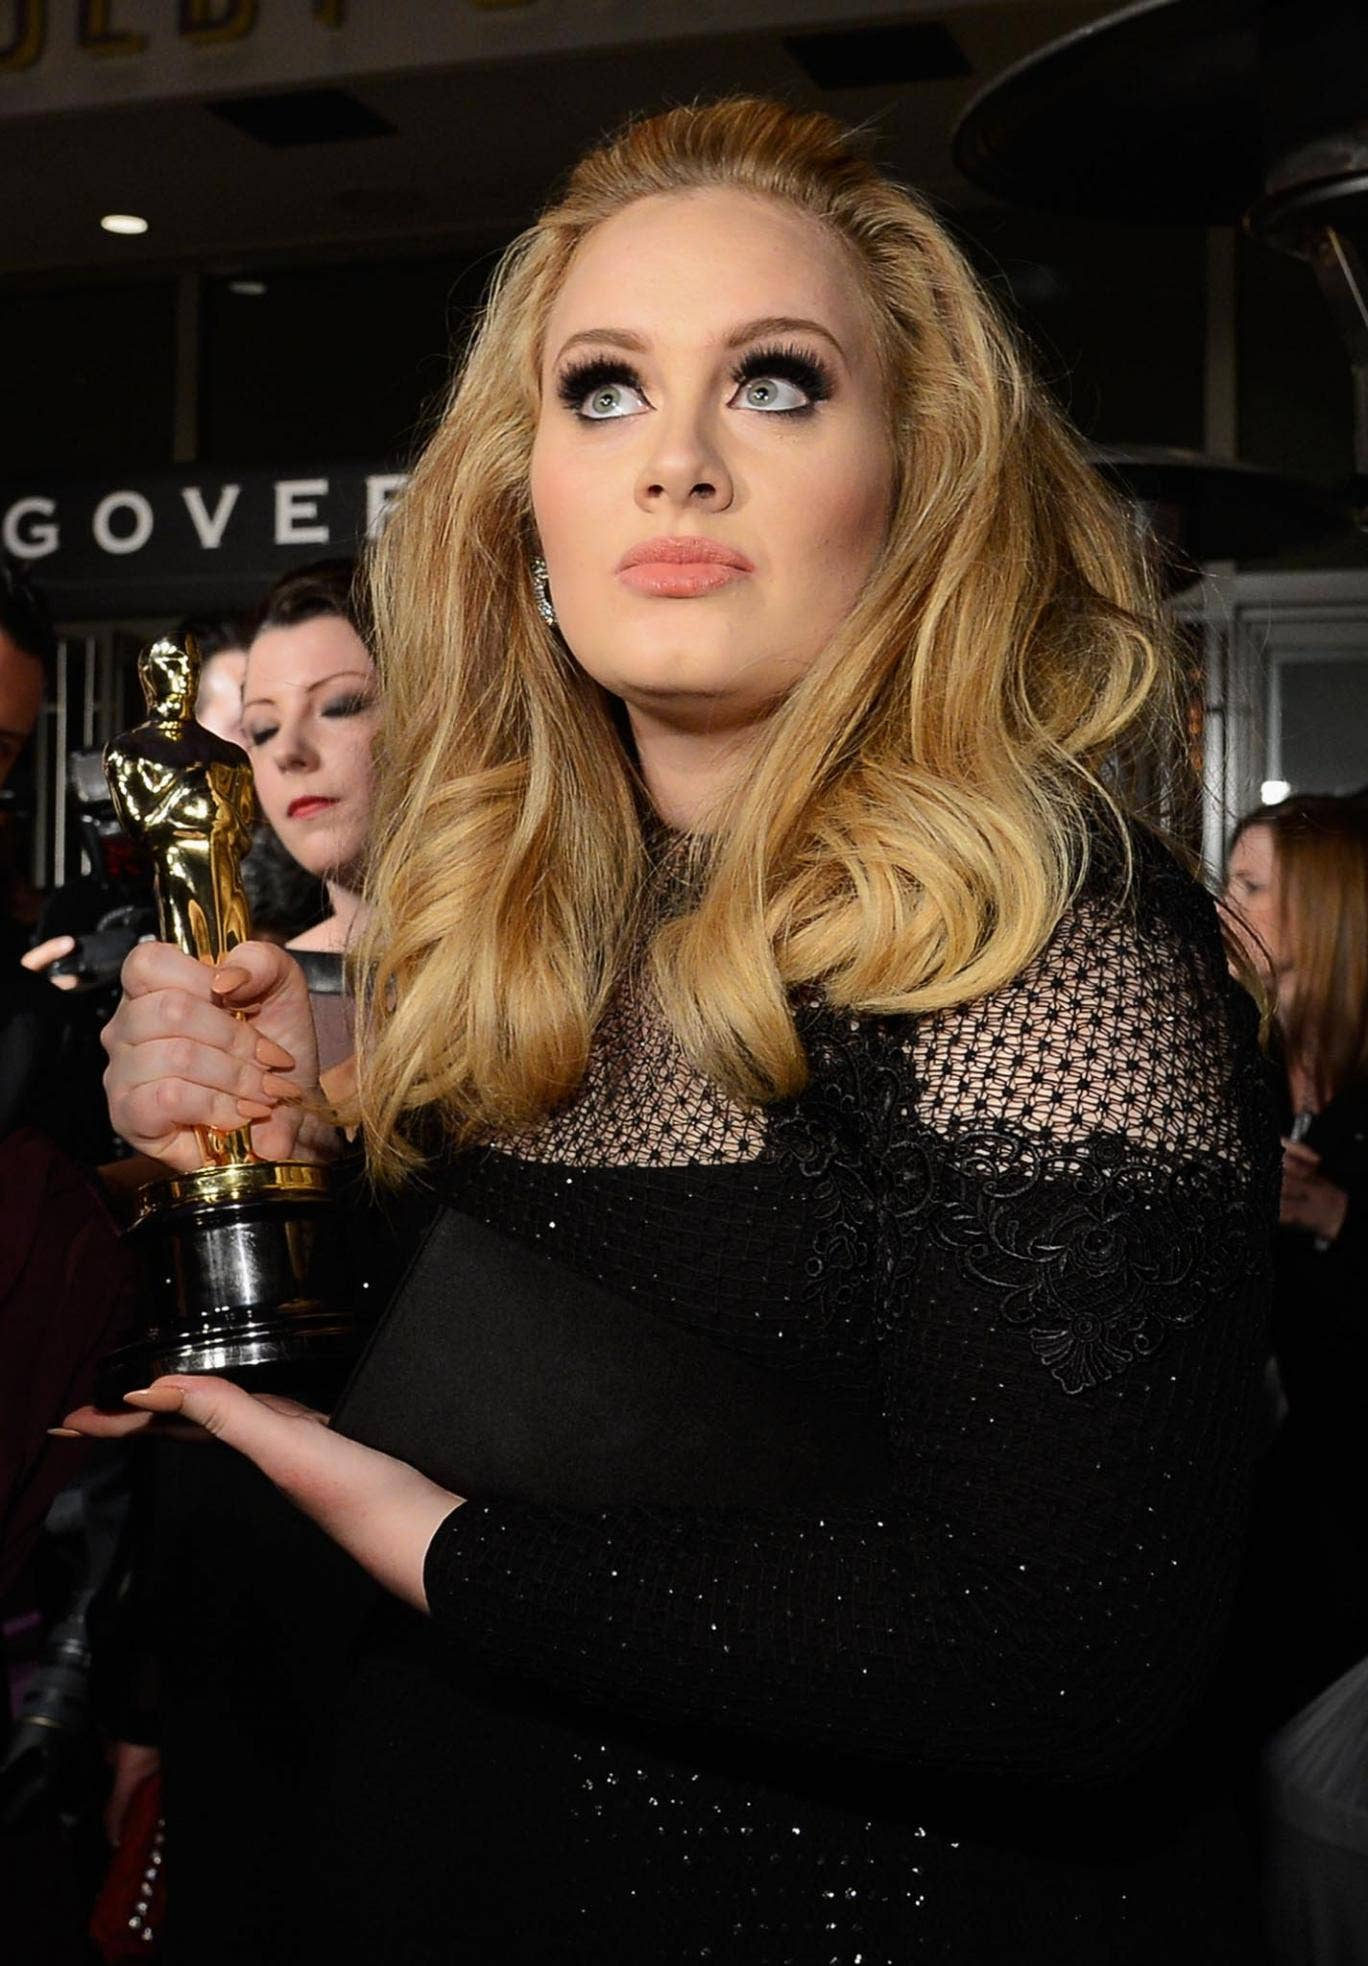 Singer Adele, winner of the Best Original Song award for 'Skyfall,' attends the Oscars Governors Ball at Hollywood & Highland Center on February 24, 2013 in Hollywood